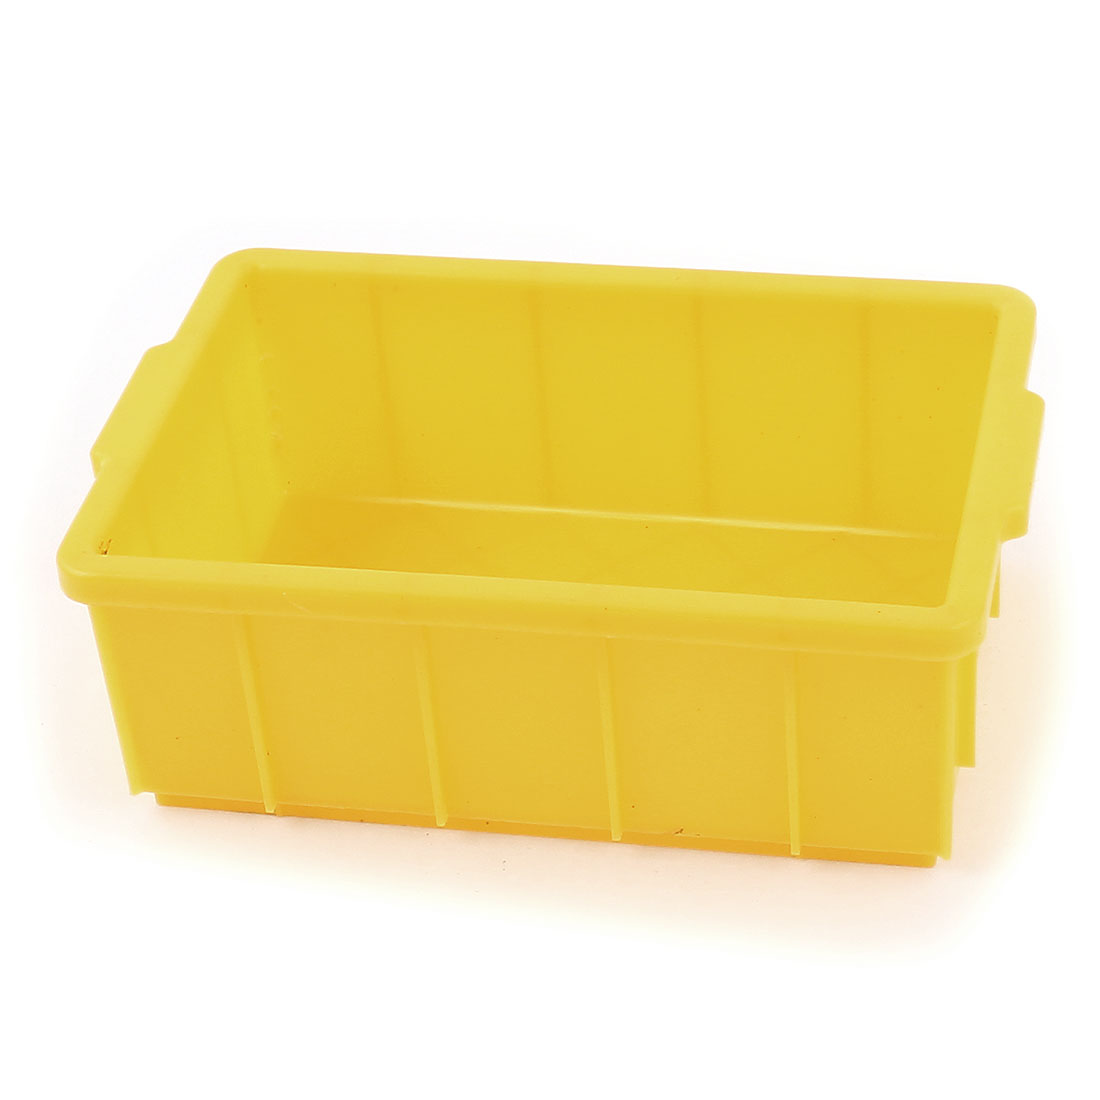 Yellow Plastic Rectangle Case IC Chip Container Electronic Component Storage Box 14.5 x 9 x 5.5cm